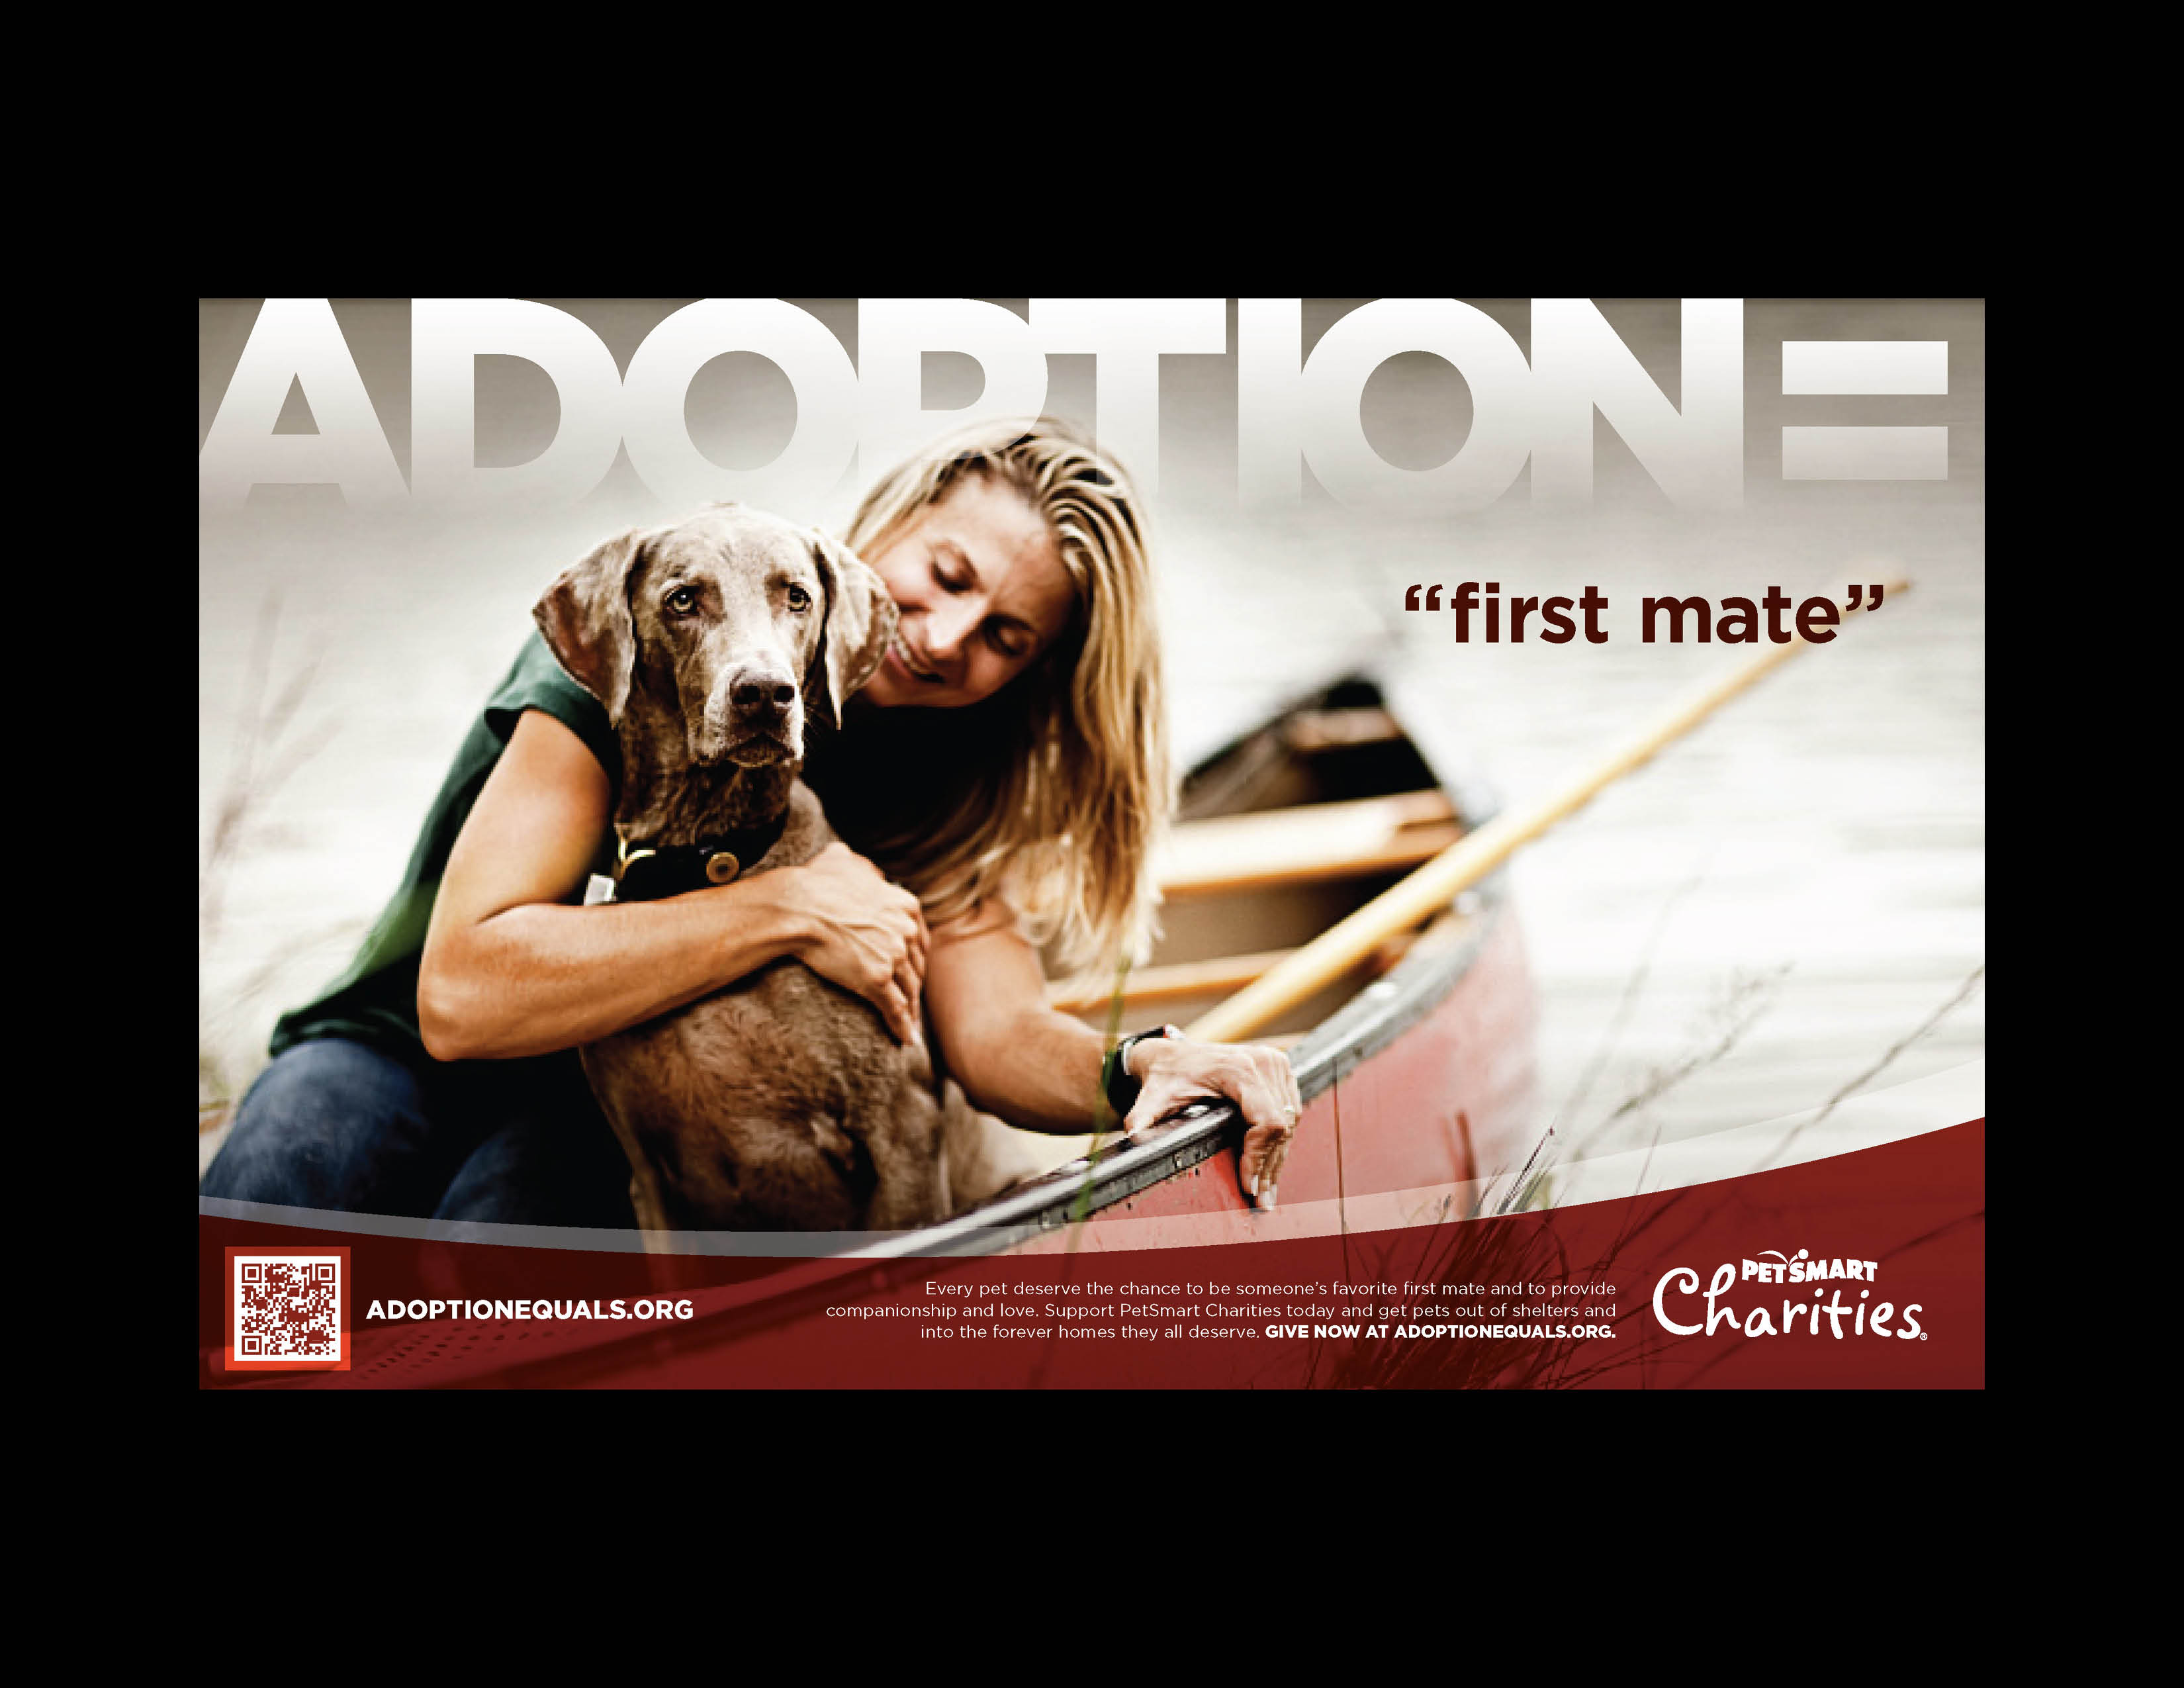 PetSmart Charities Adoption Equals Multichannel Campaign by David